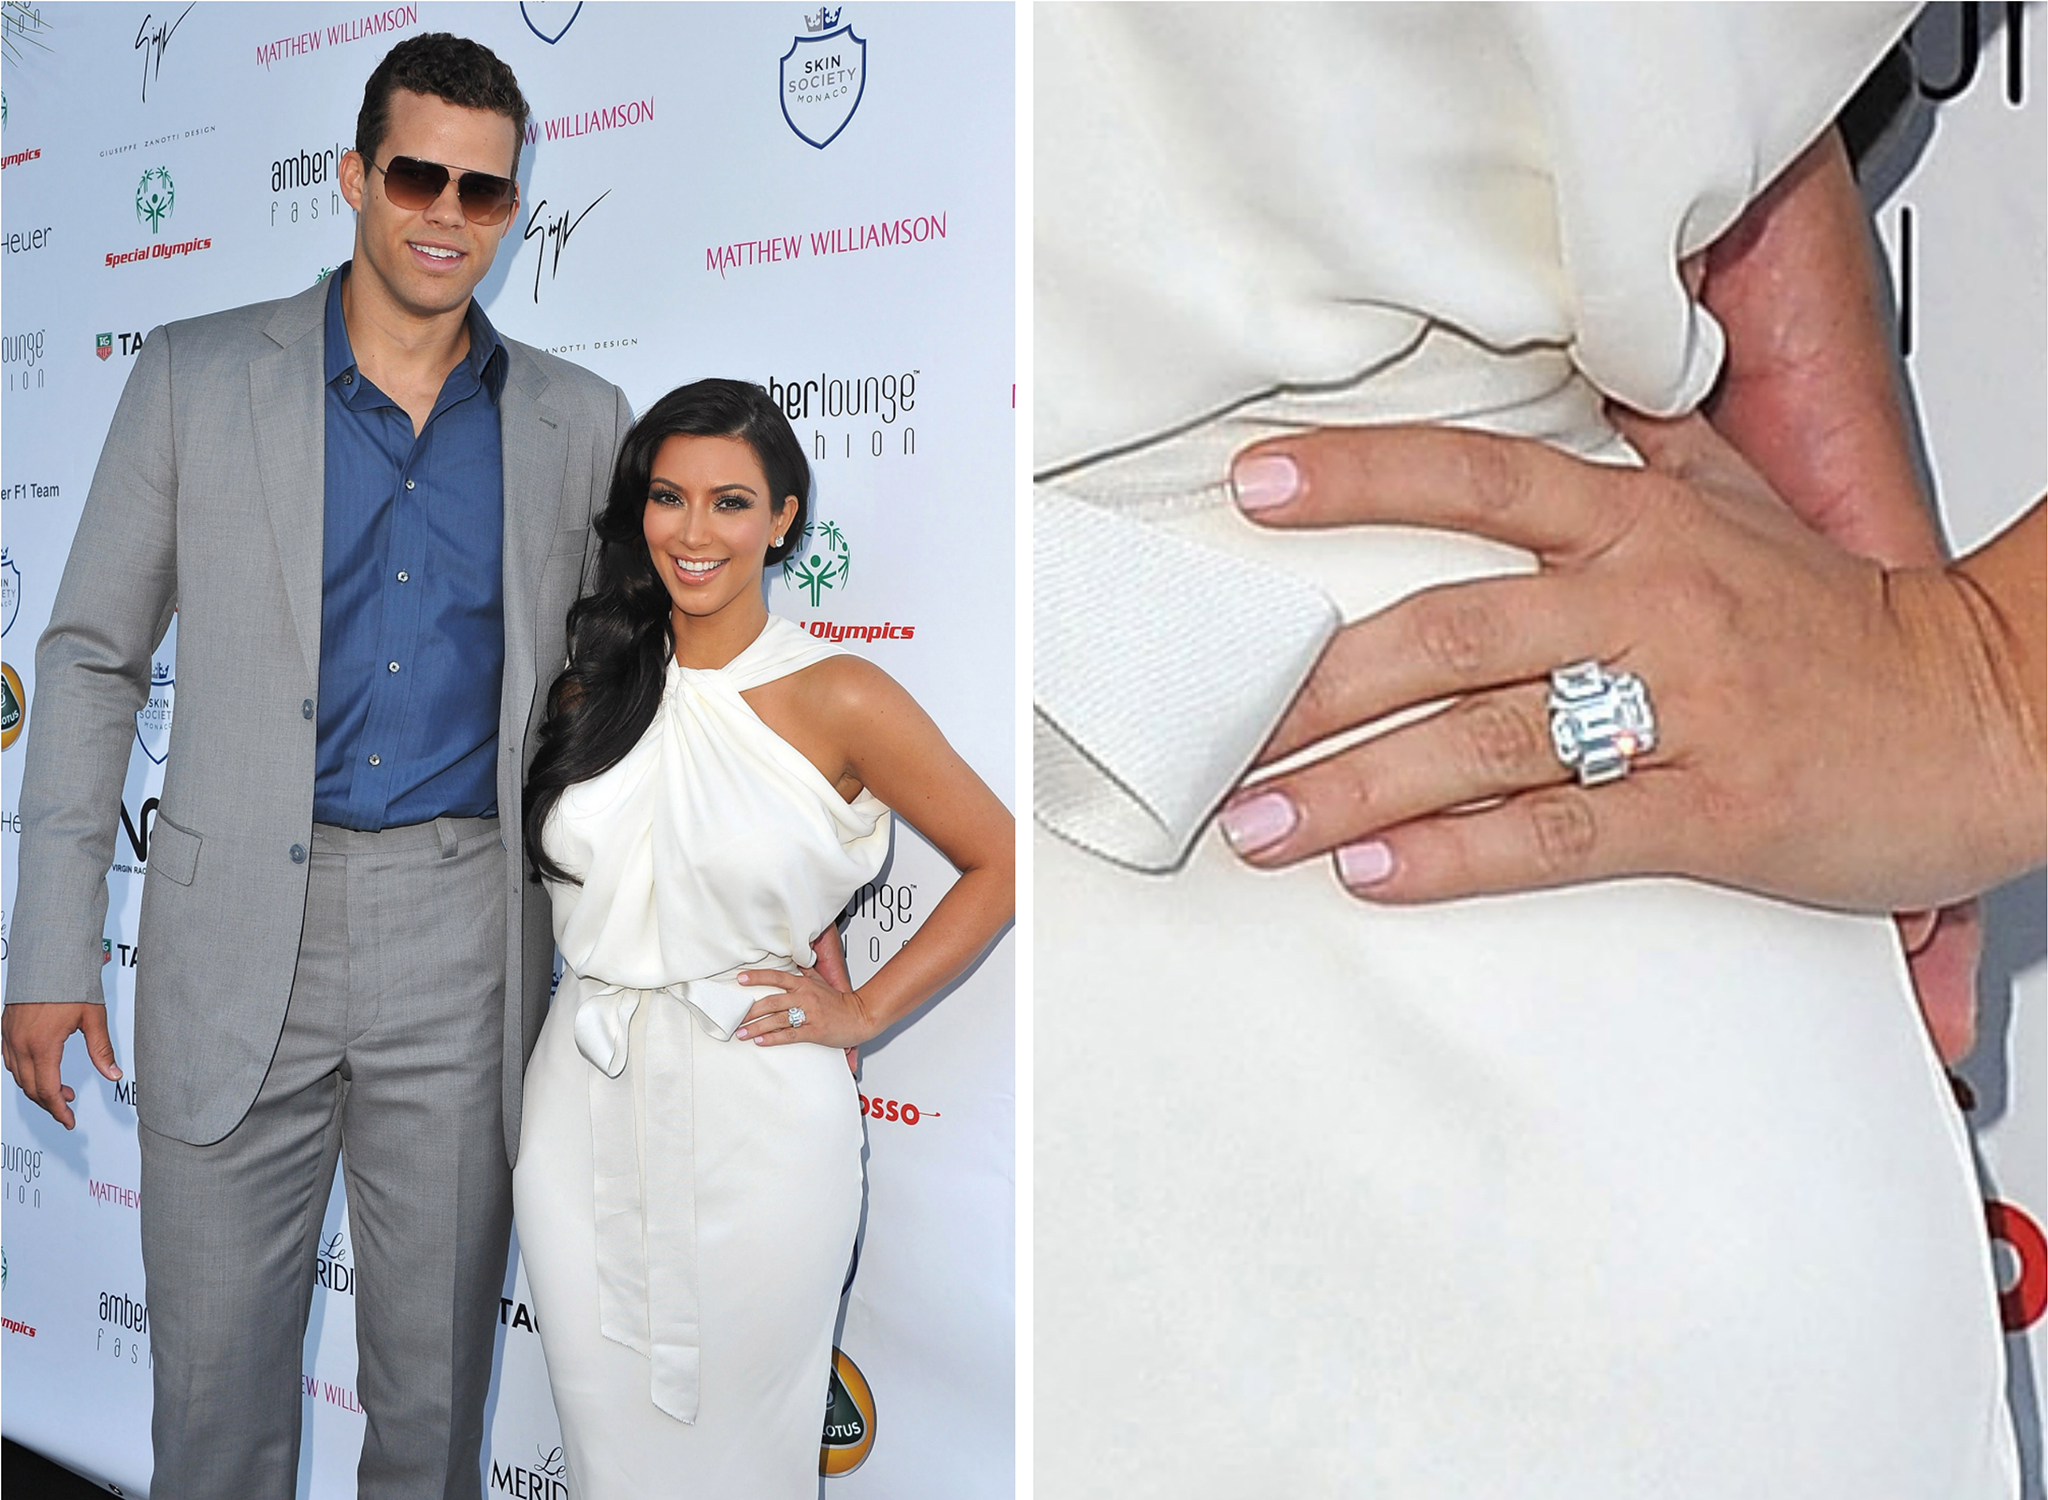 Kris Humphries and Kim Kardashian (Getty Images)